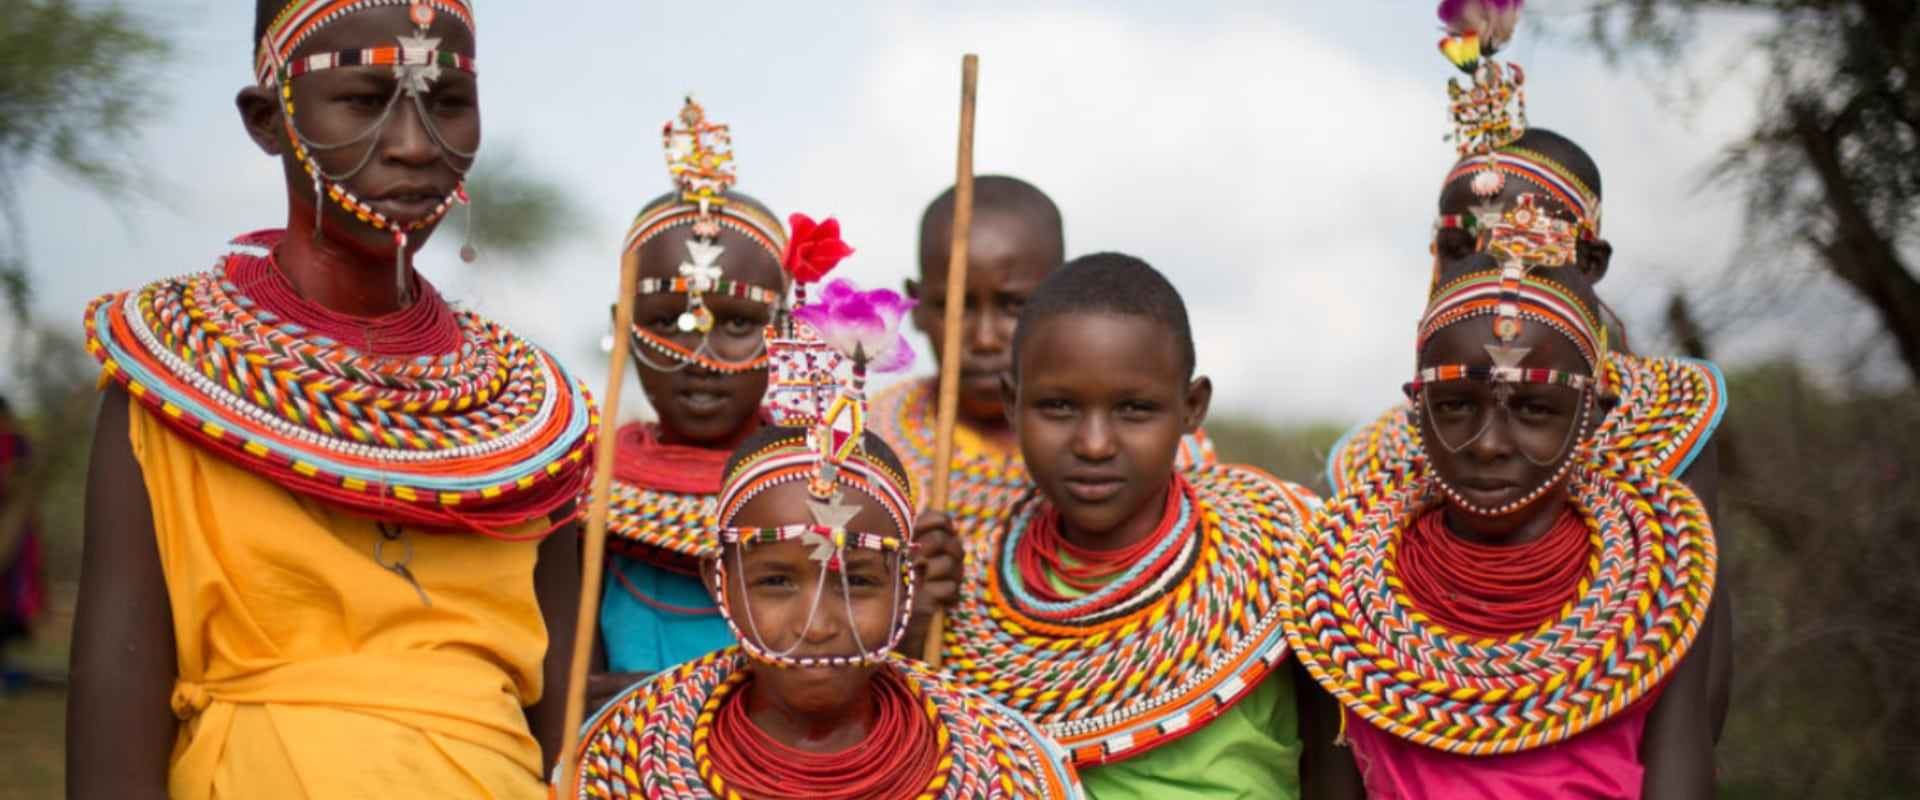 A day in the life of a traditional Masai village